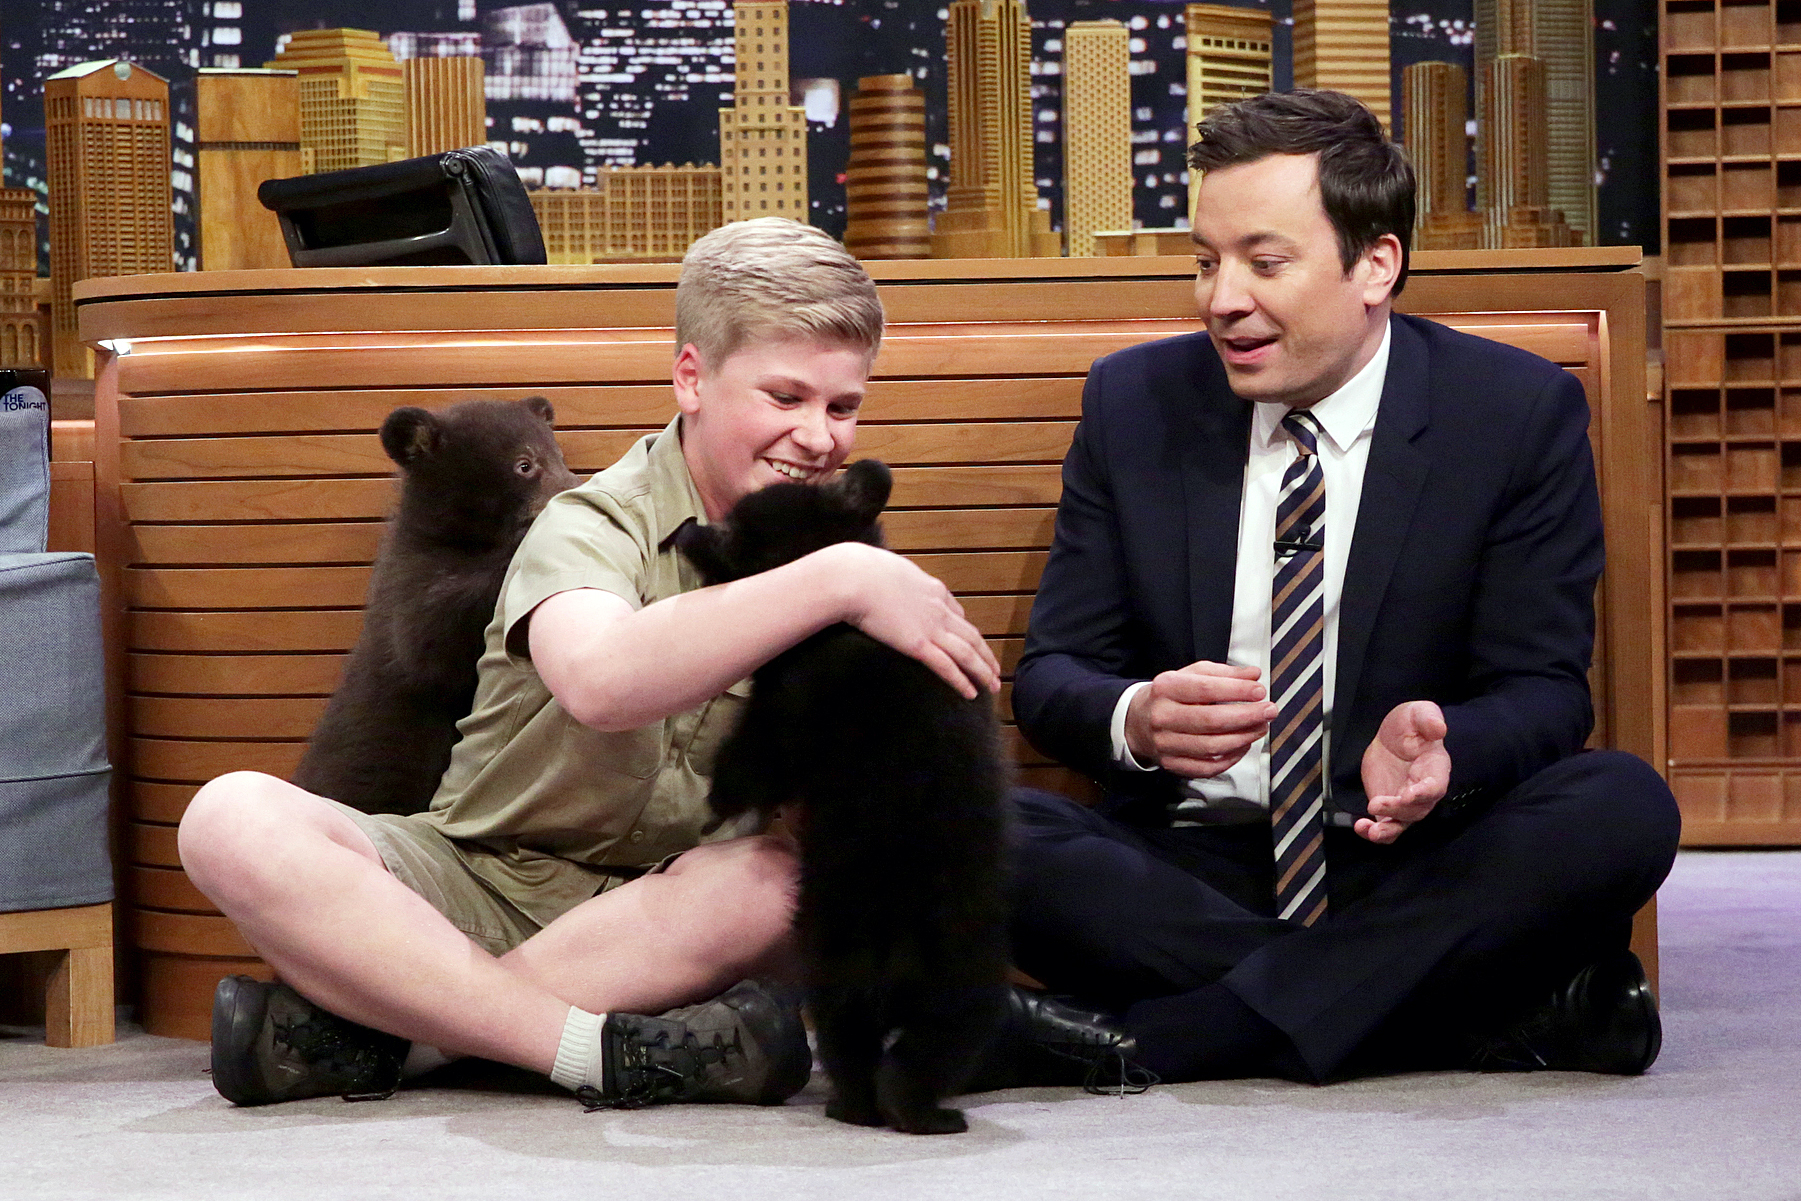 Robert Irwin Jimmy Fallon black bears